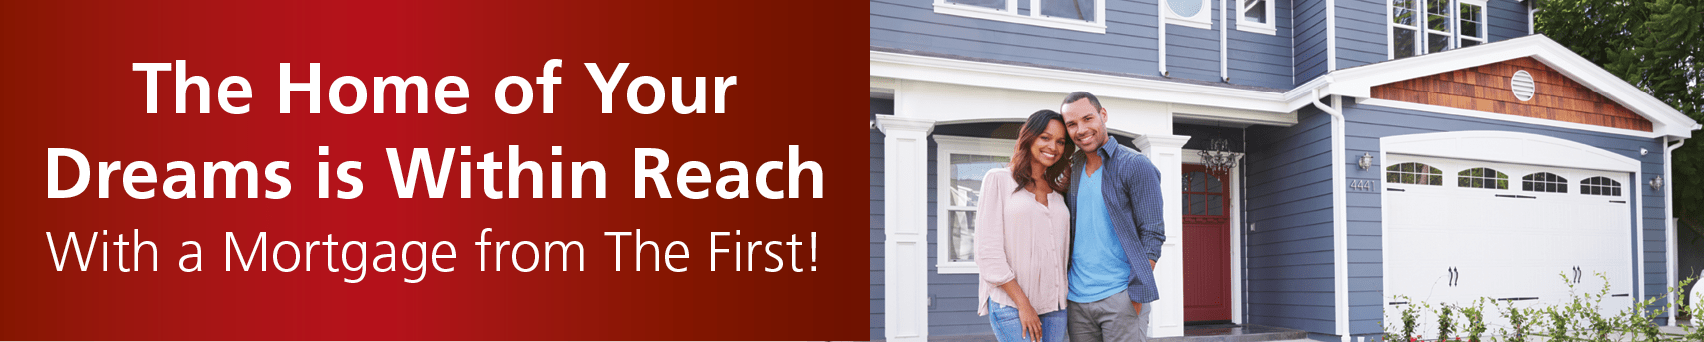 The Home of Your Dreams is Within Reach - Mortgage Rates as Low as 4.75%APR.